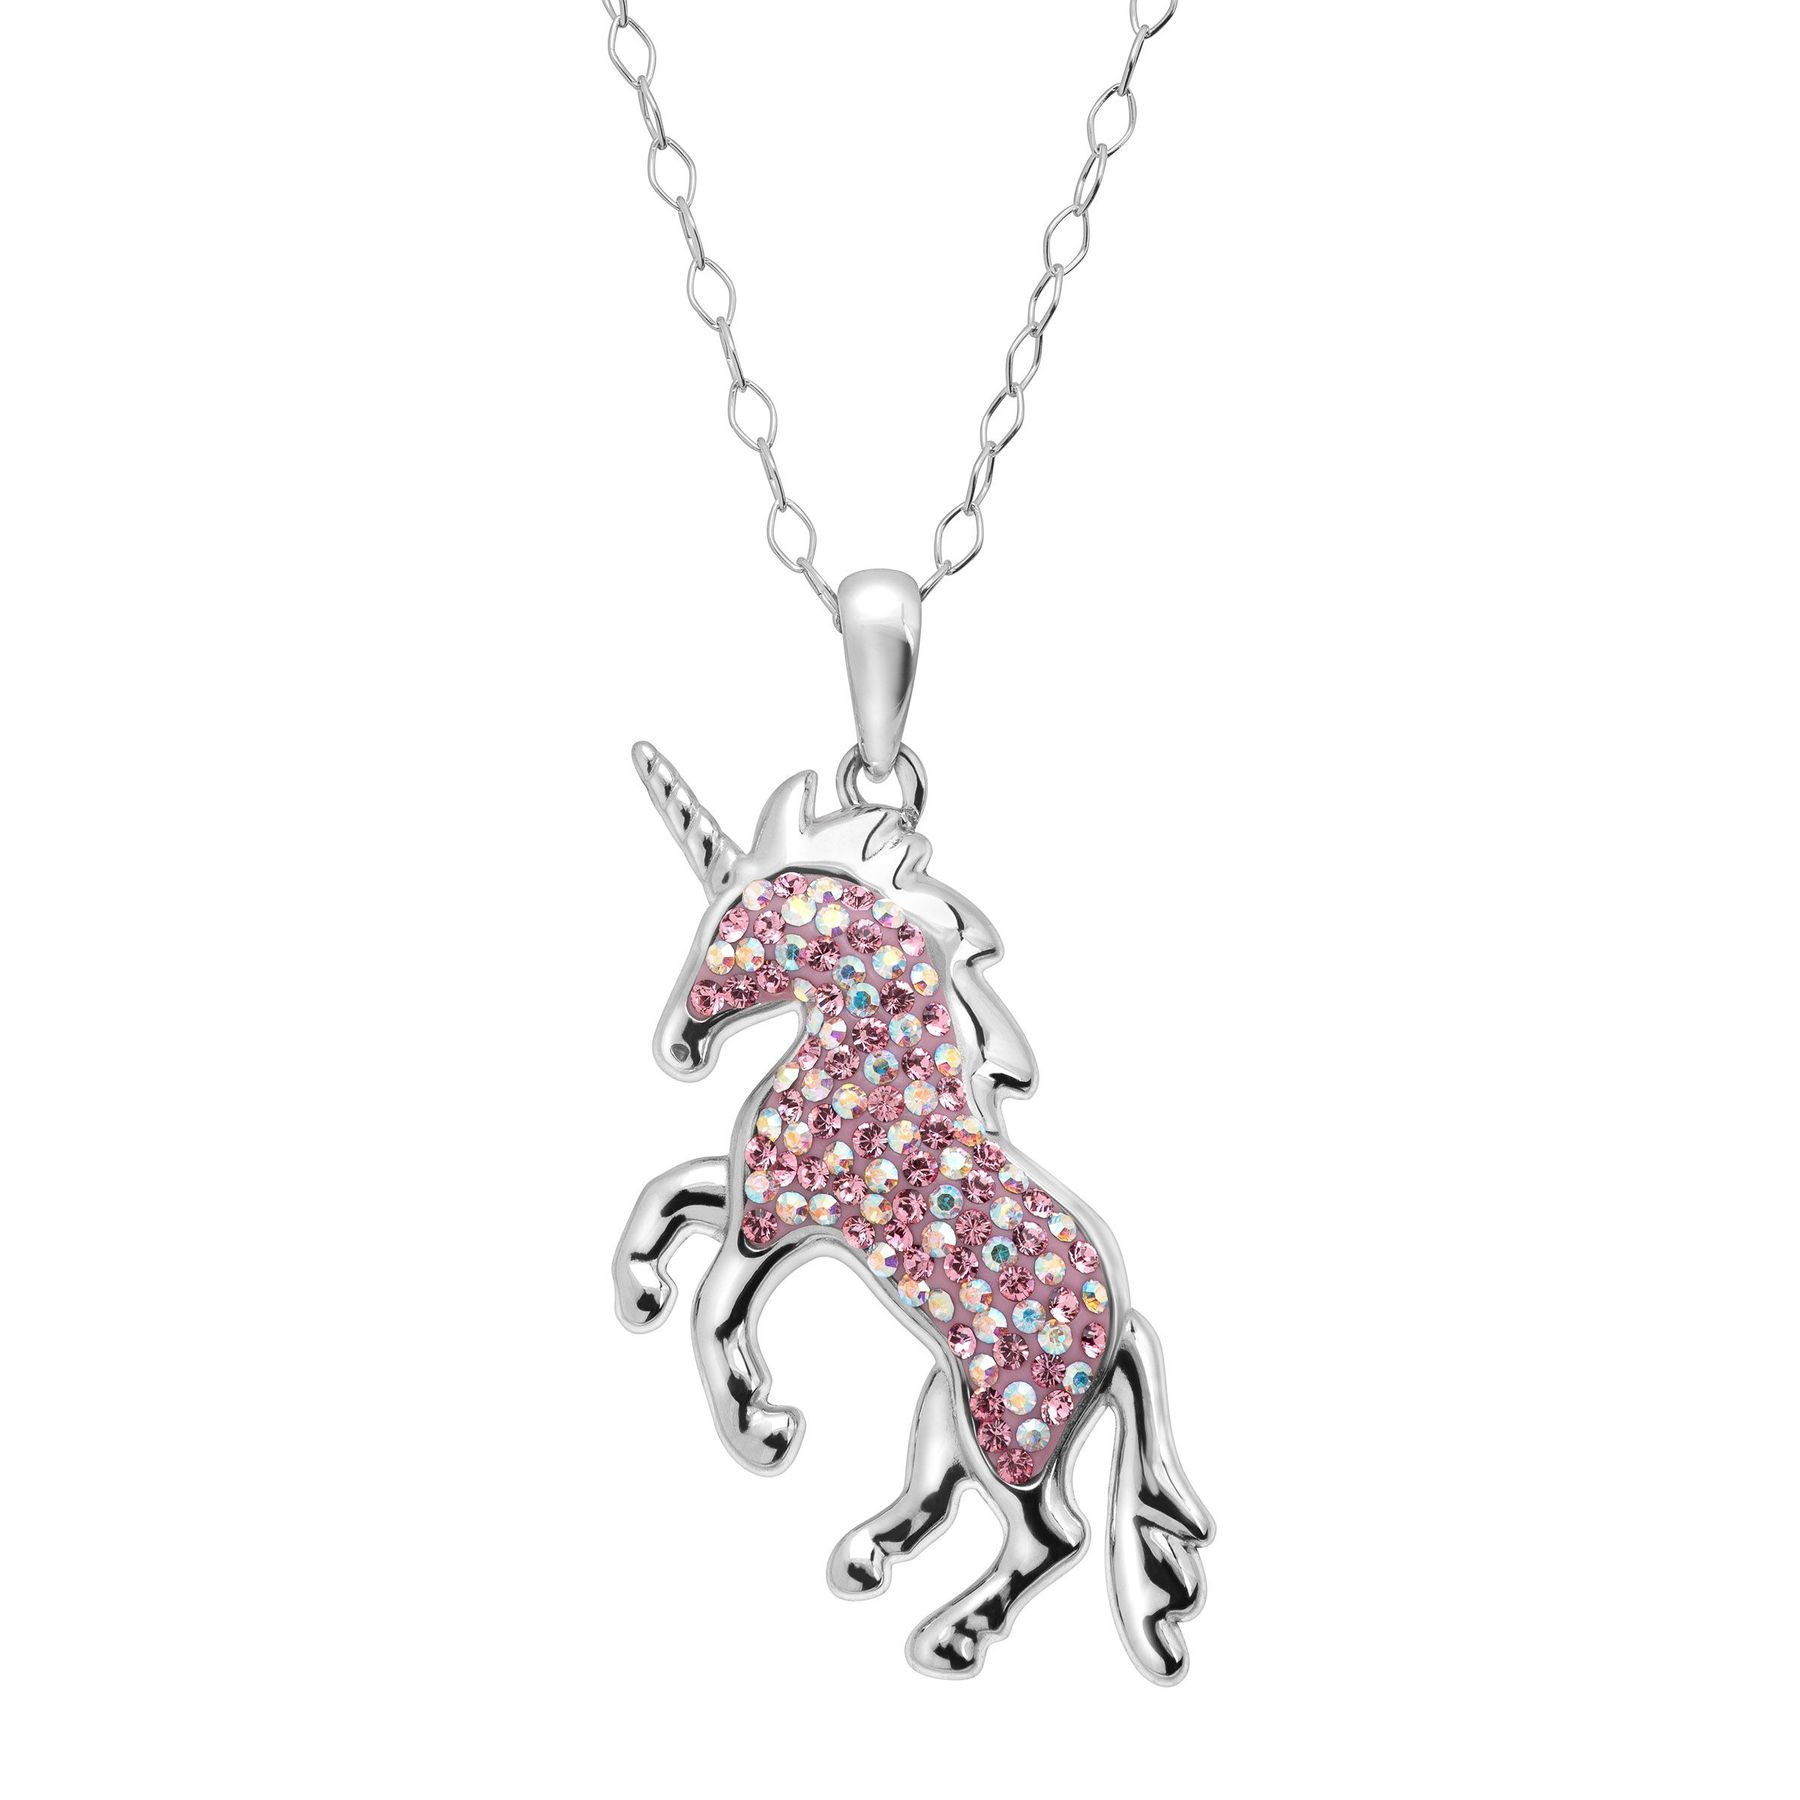 loading gift chain jewelry necklace image best is great set itm pendant unicorn letter friends